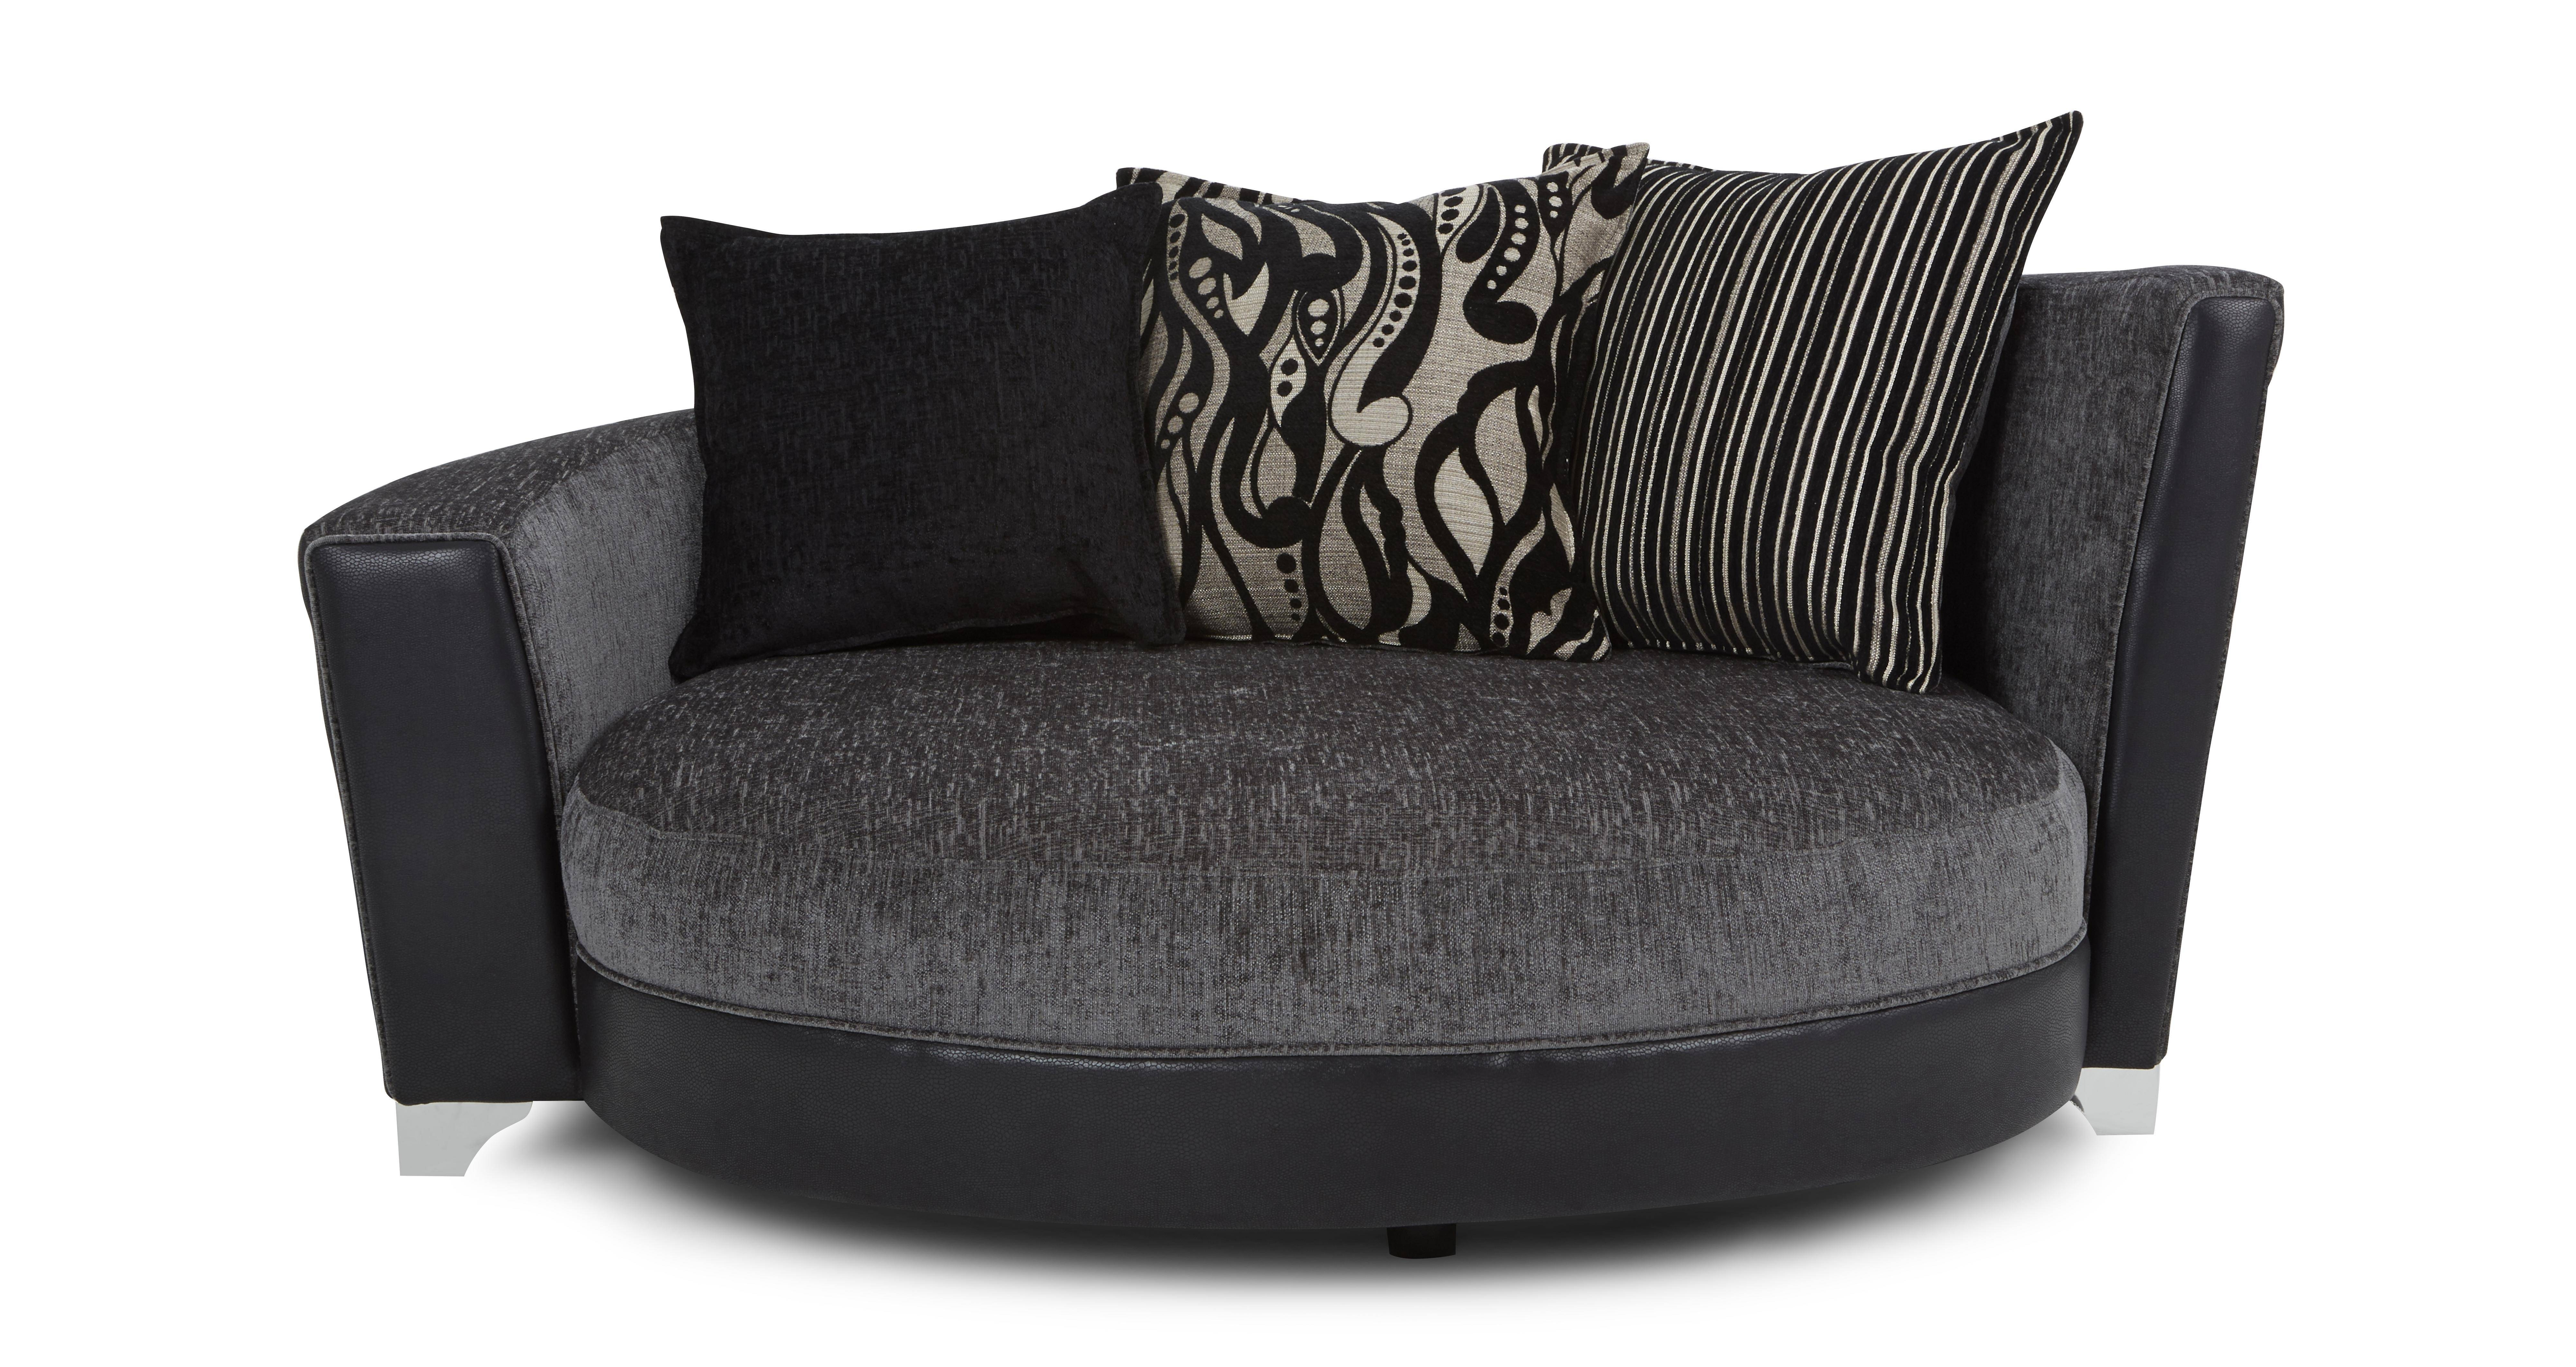 Sofas Center : 41 Formidable Swivel Sofa Chair Picture Concept In Swivel Sofa Chairs (View 22 of 30)